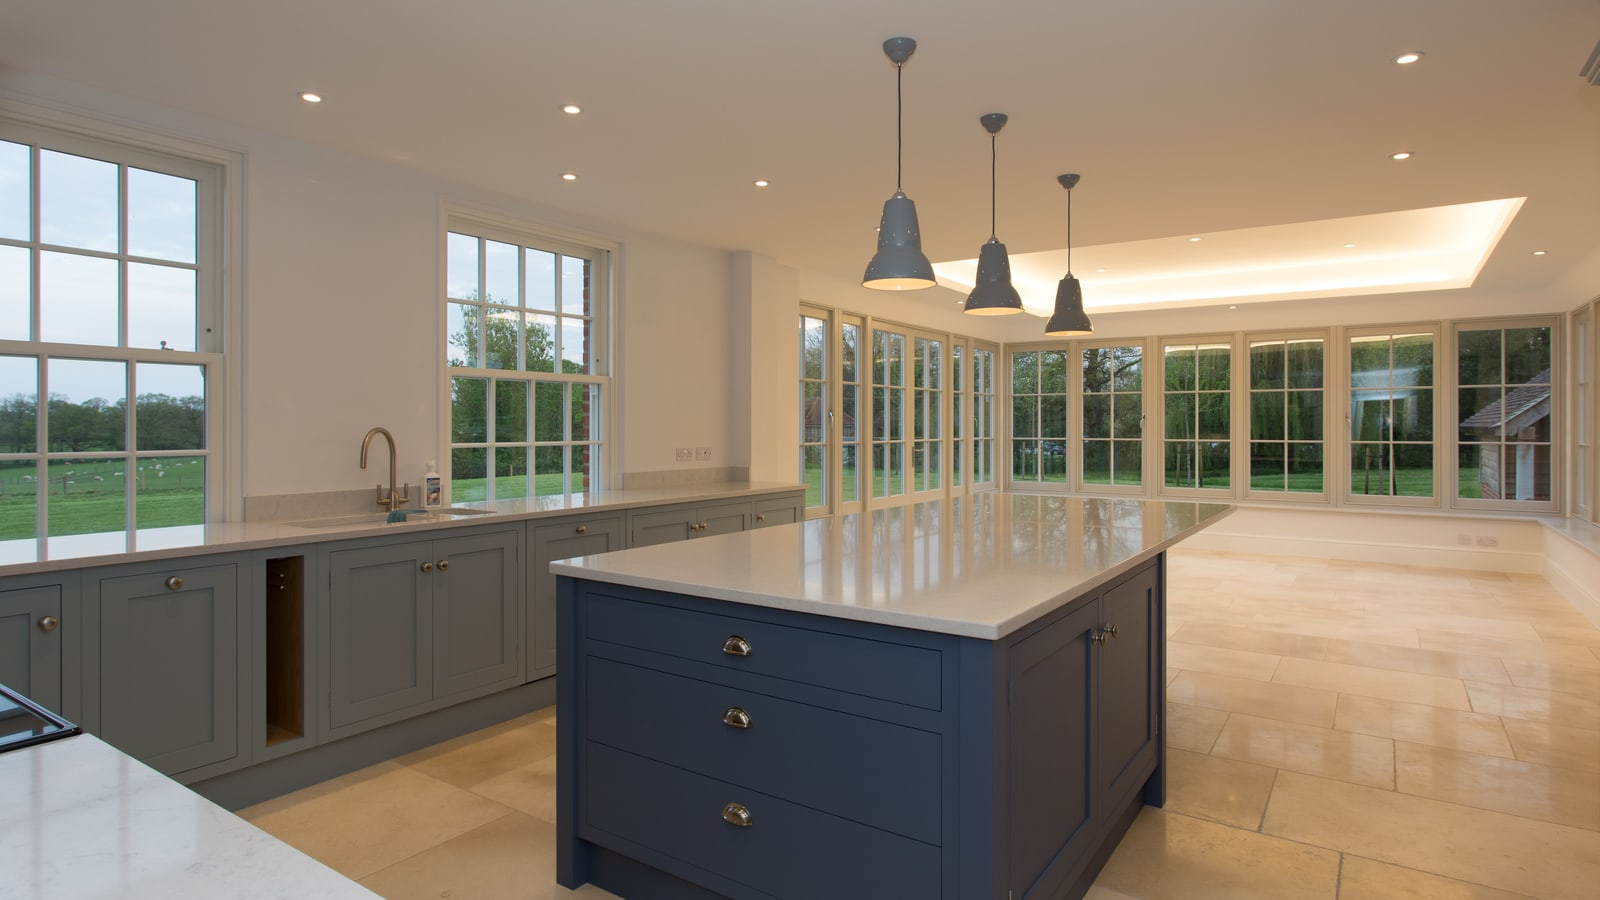 Garden room extension adds a luxurious open plan kitchen space flooded with natural daylight from the timber windows